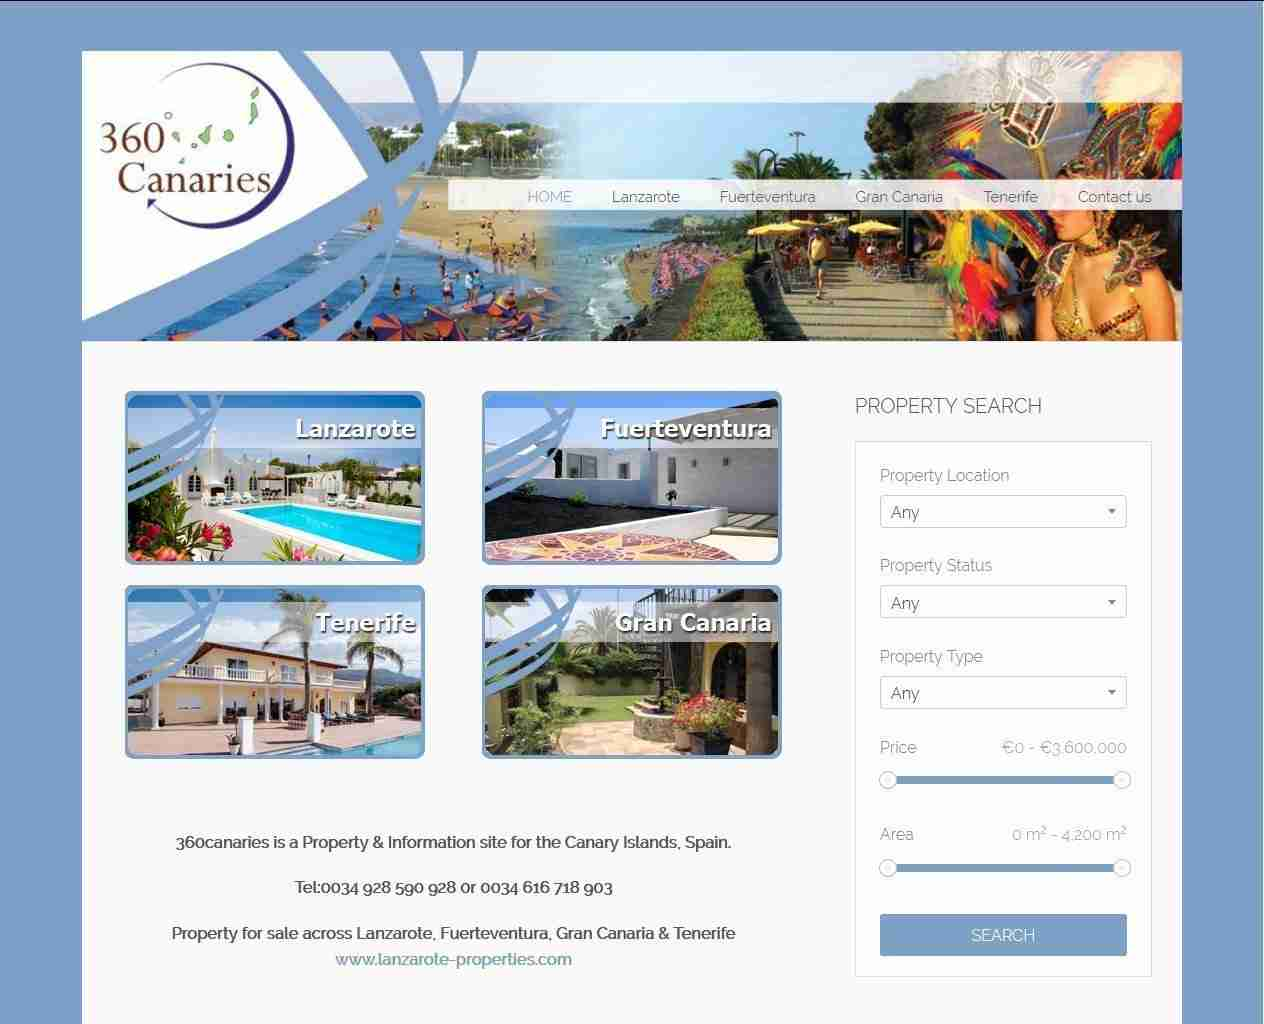 Spain Web Design and more by Gandy-Draper | I would not hesitate to recommend Elle in the highest terms